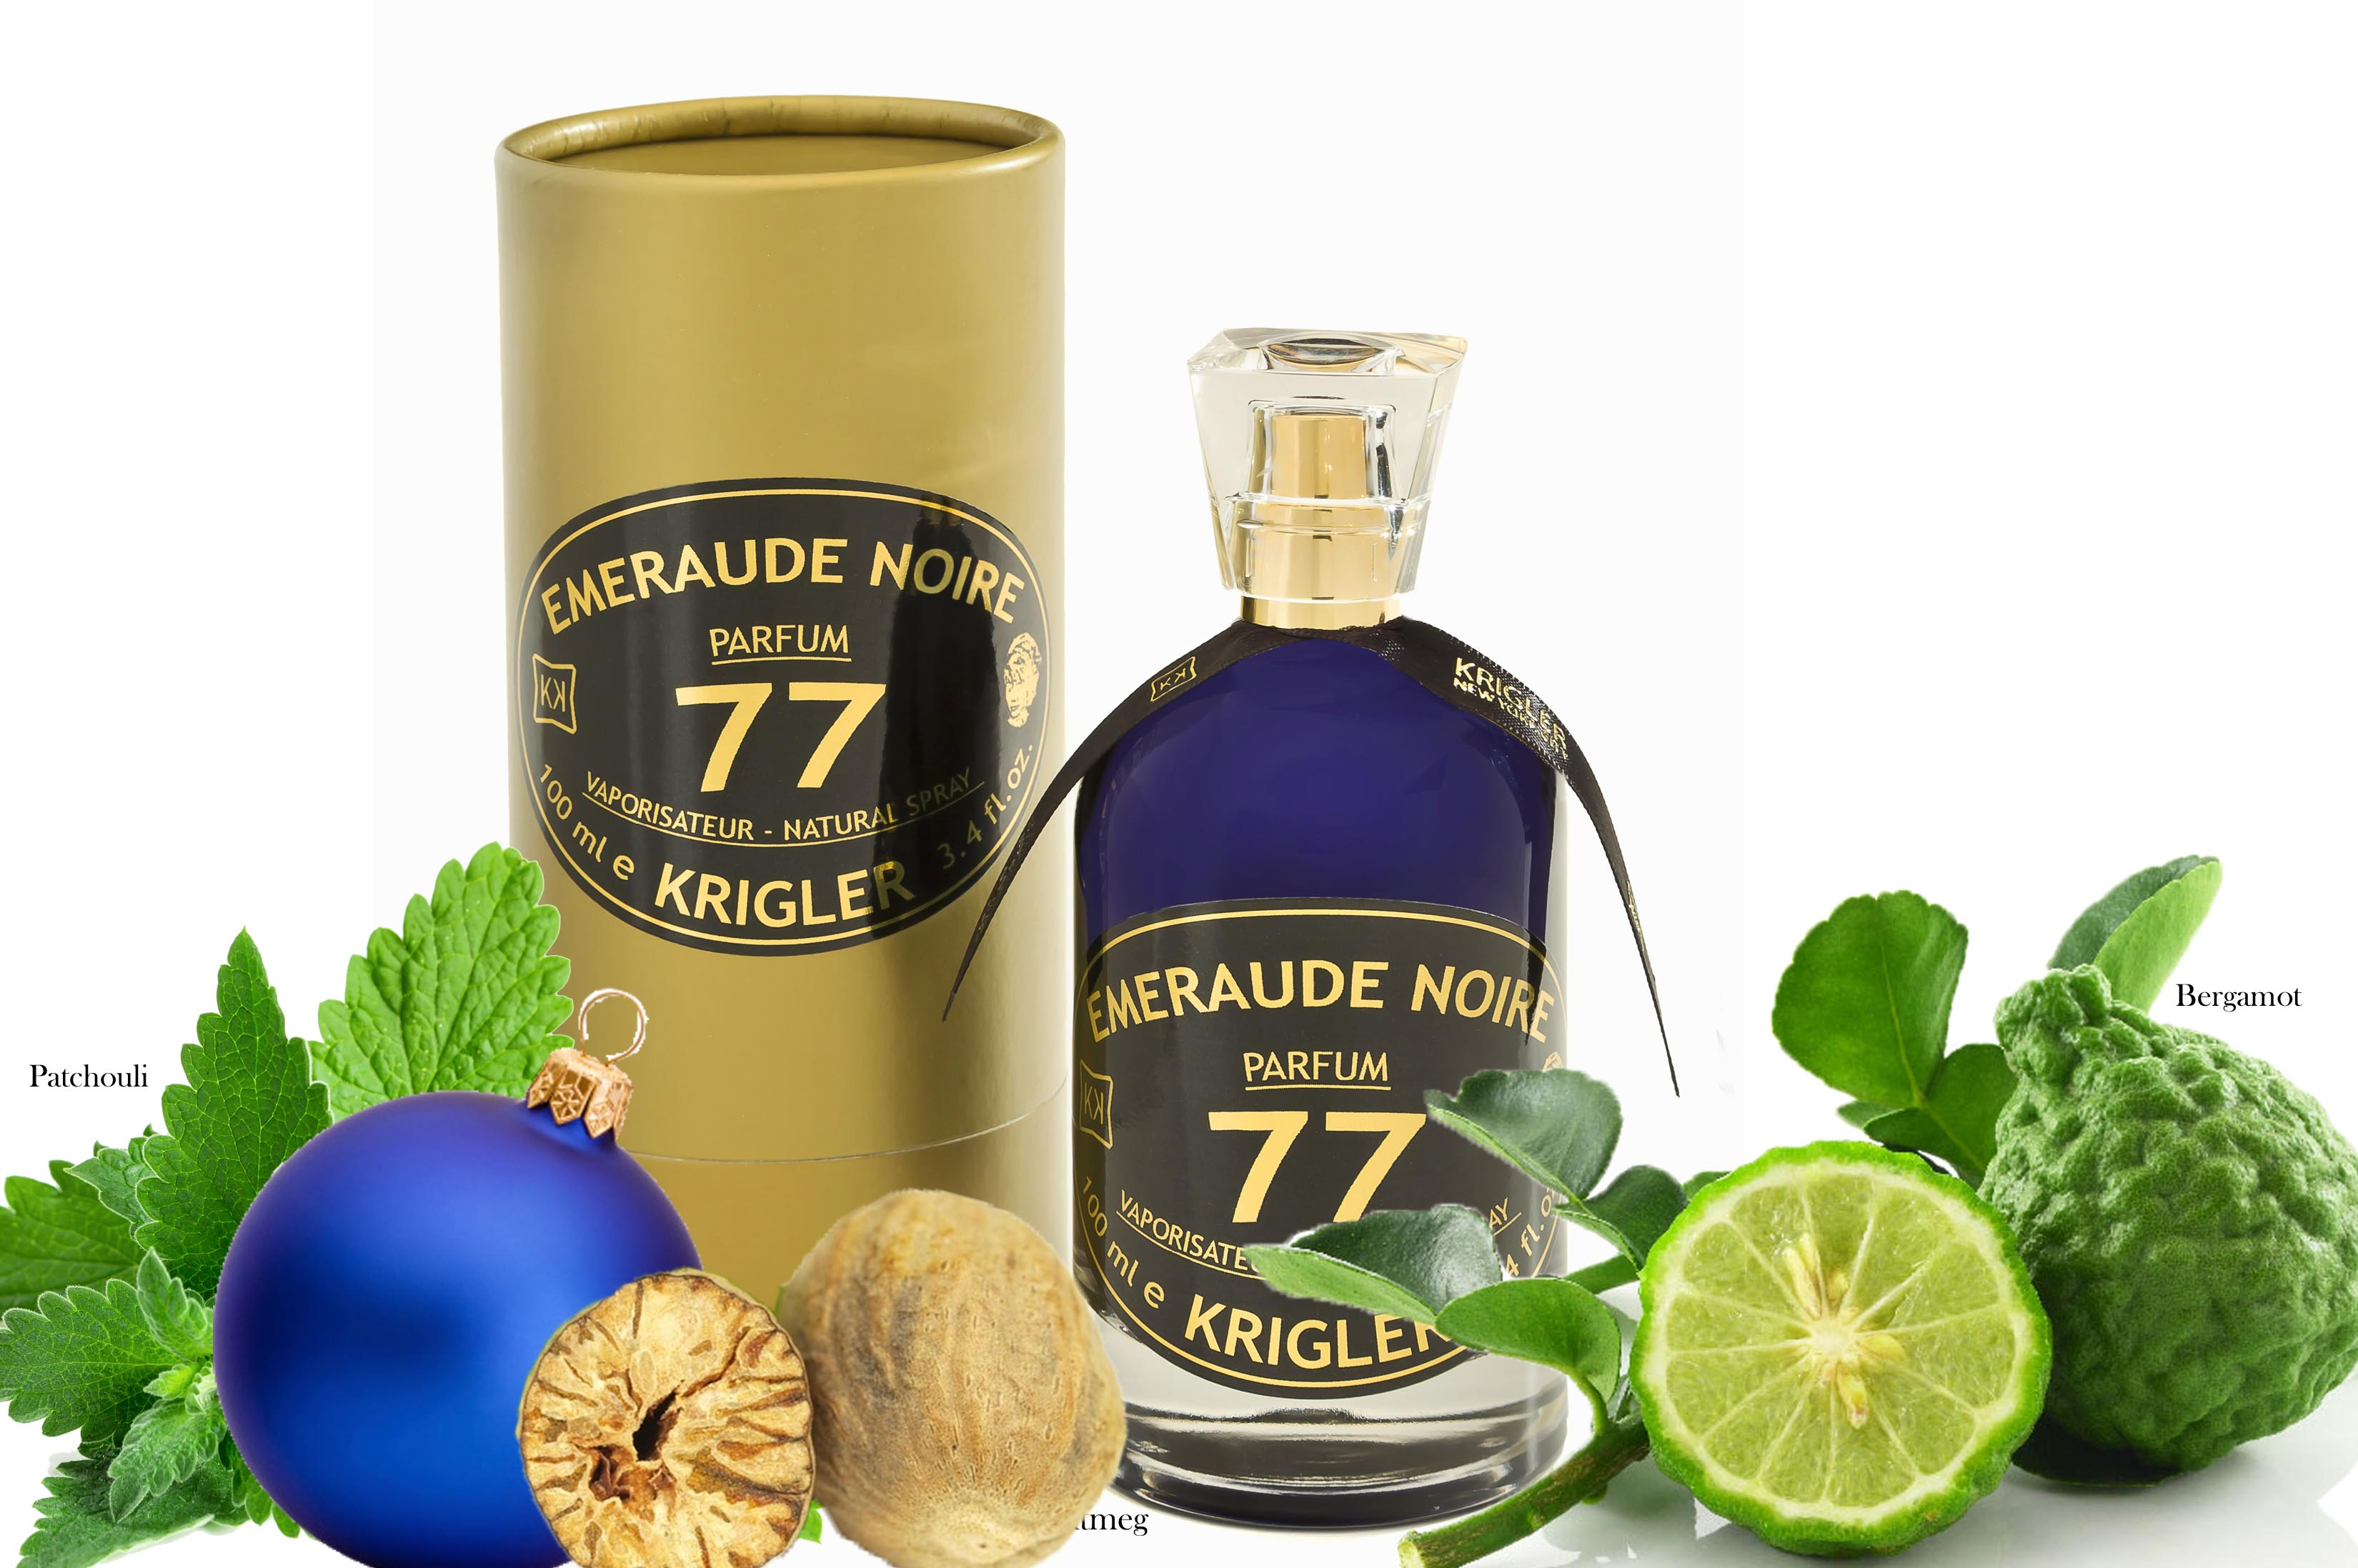 Krigler fragrances, emeraude noire, holiday shopping